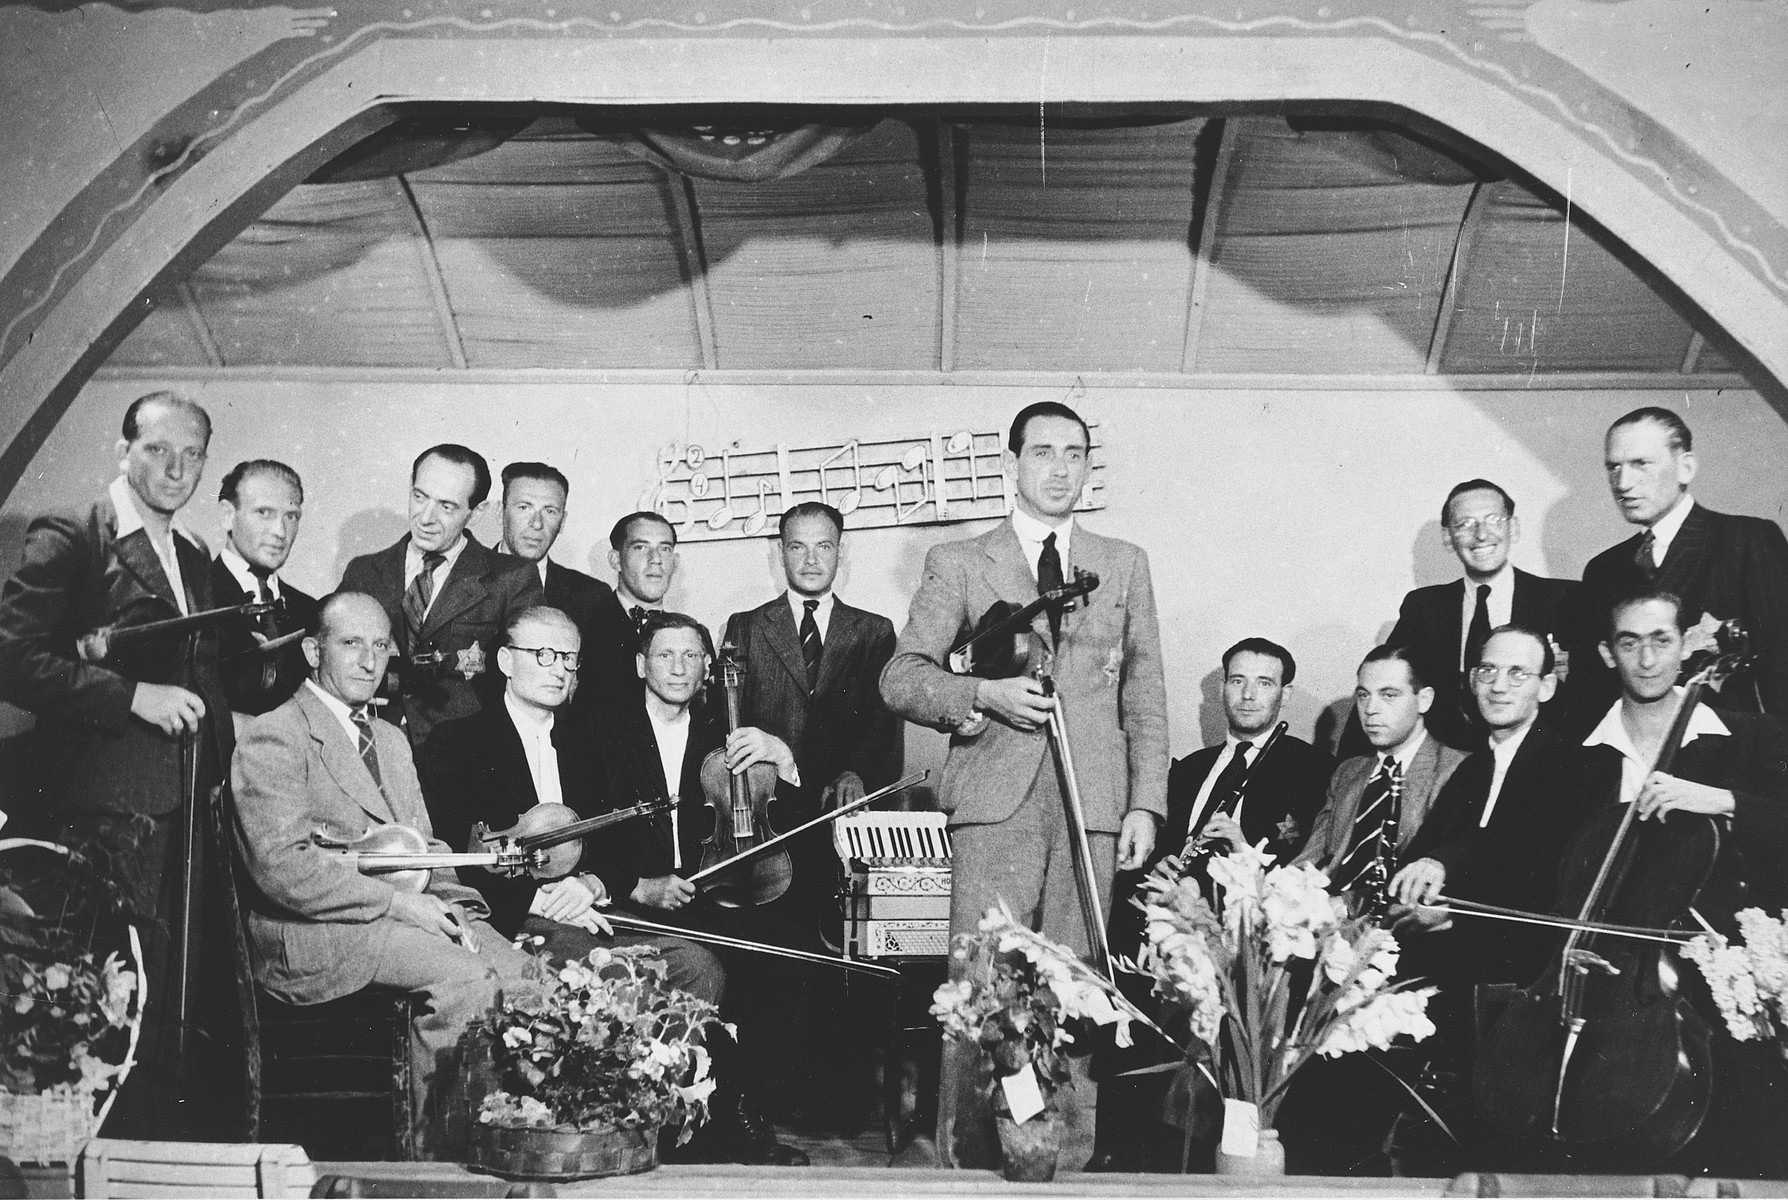 Members of the Westerbork string orchestra pose on stage with their instruments.  Guitarist  Salomon de Zwarte is standing third from the left.